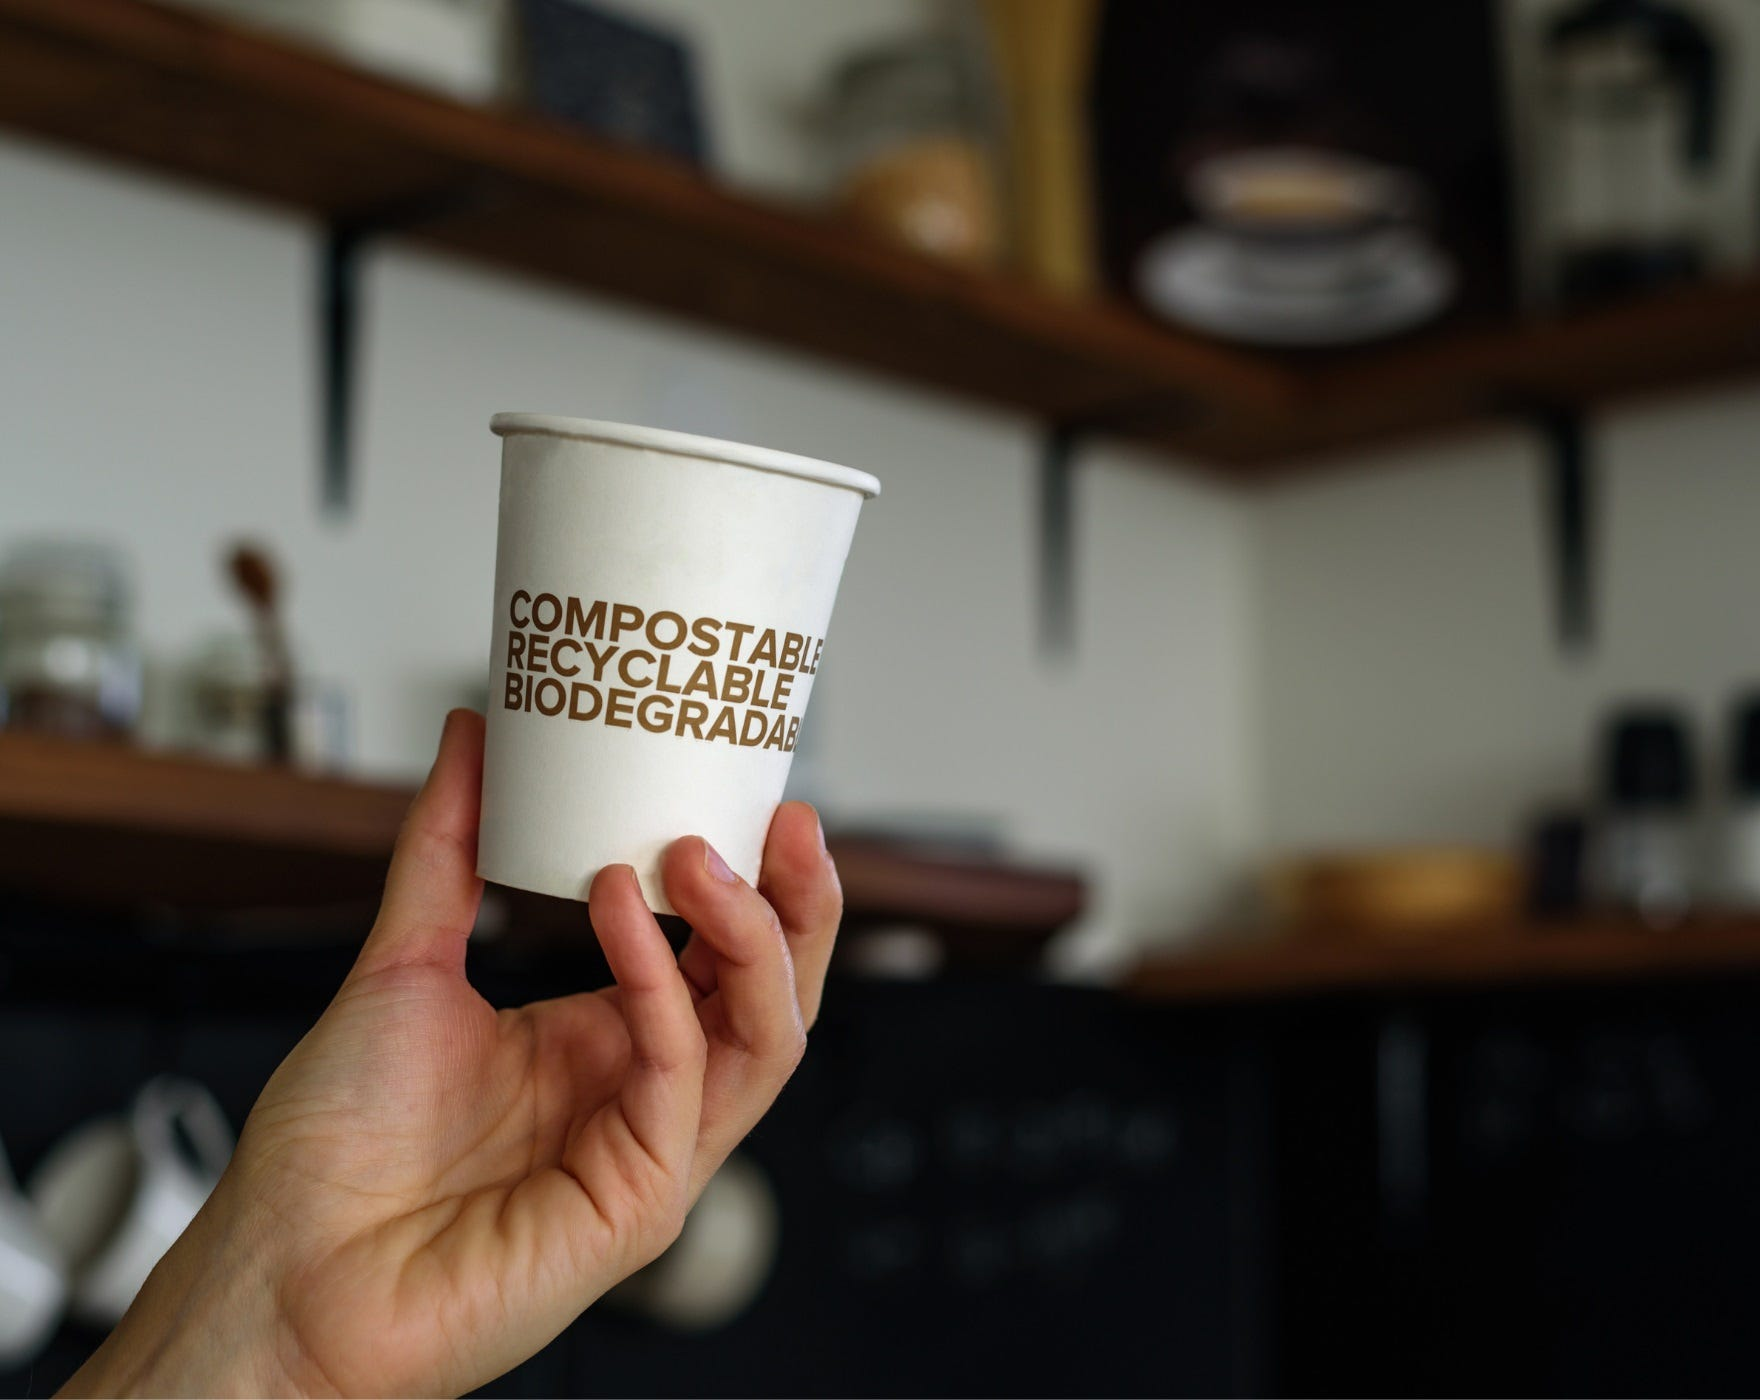 Compostable Recyclable Biodegradable Coffee Cup